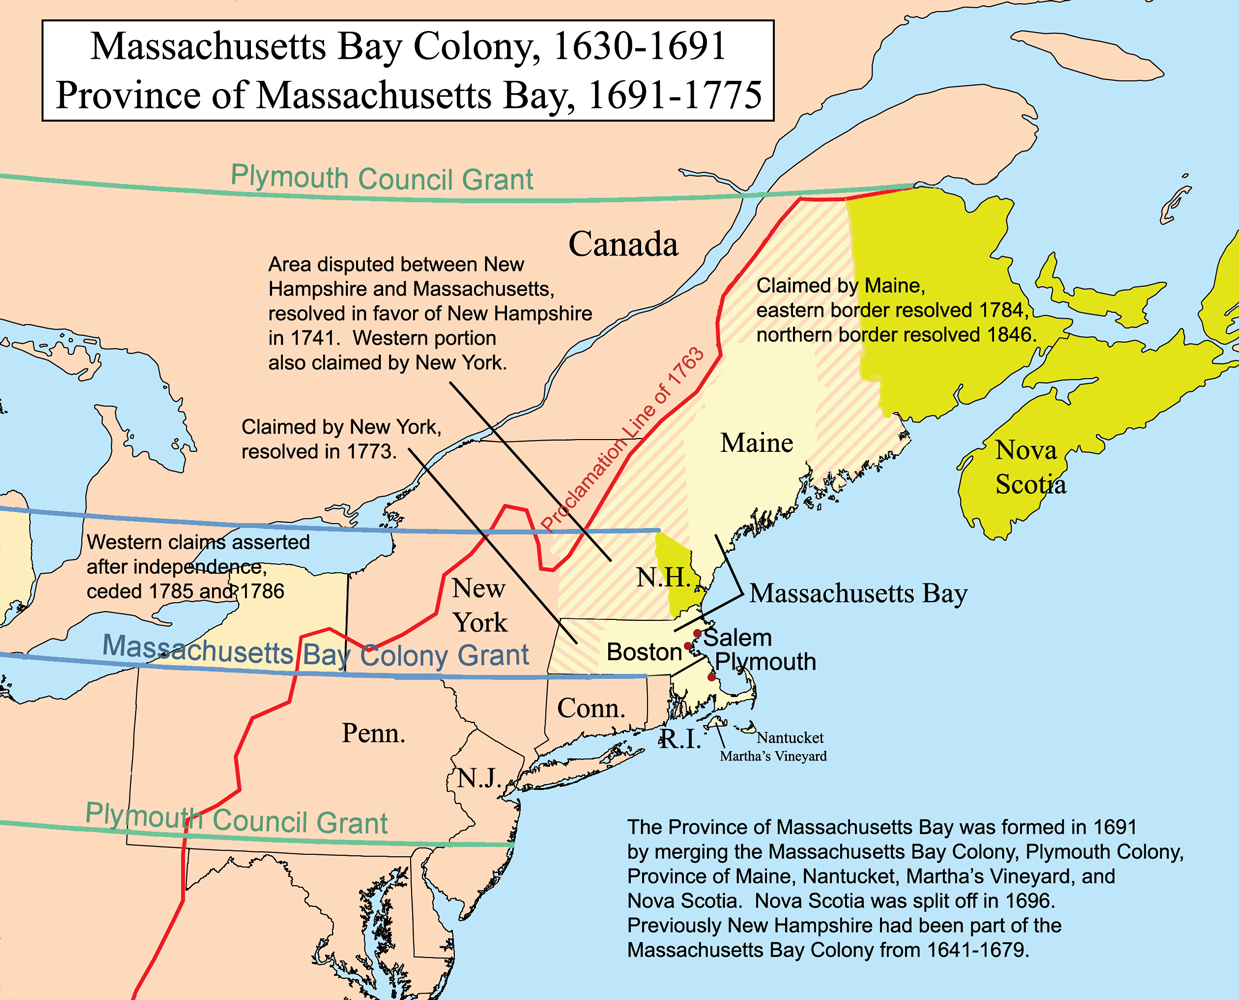 the environments of the new england and chesapeake bay region The colonists of the chesapeake bay region, on the other hand, led harder lives compared to that of the colonists of new england the chesapeake bay had an unhealthy environment, bad eating diets, and intolerable labor.